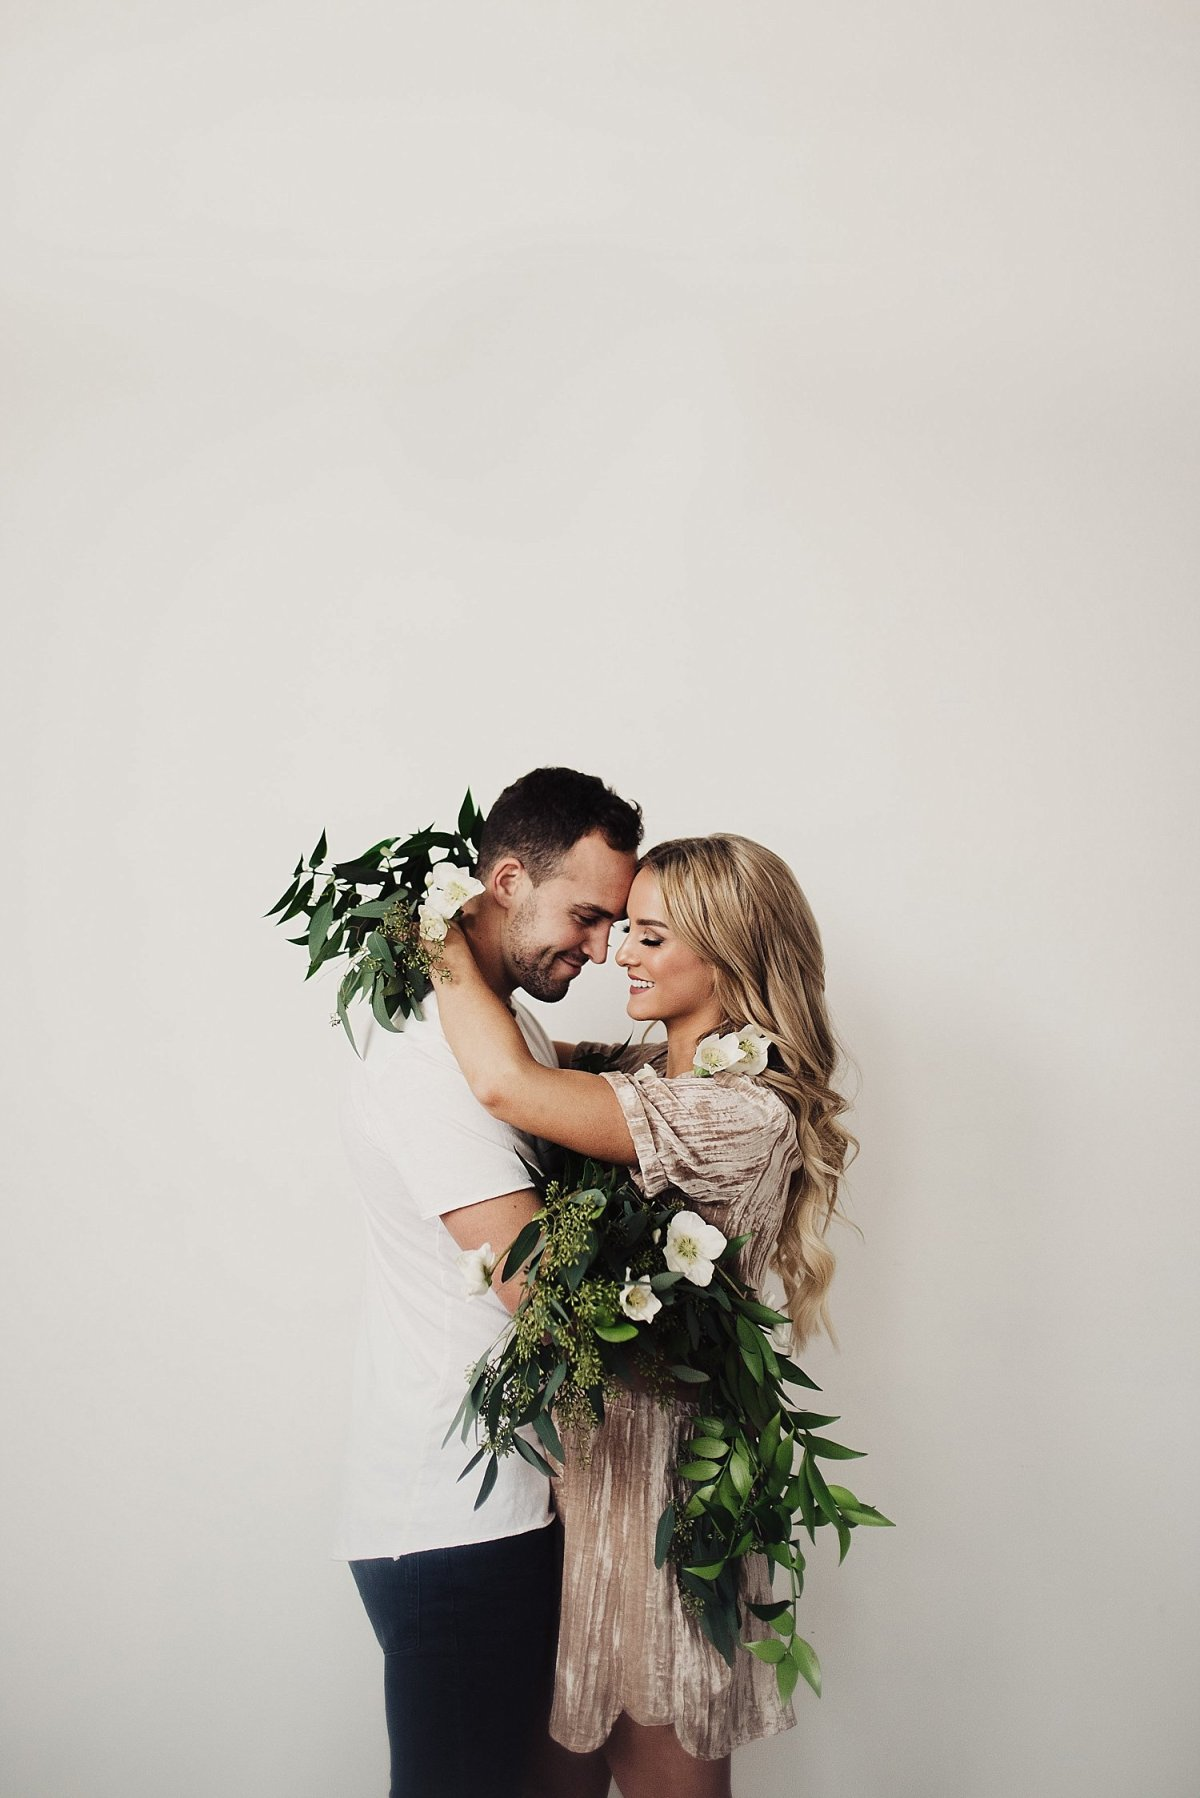 Engagement Photoshoot with Flowers